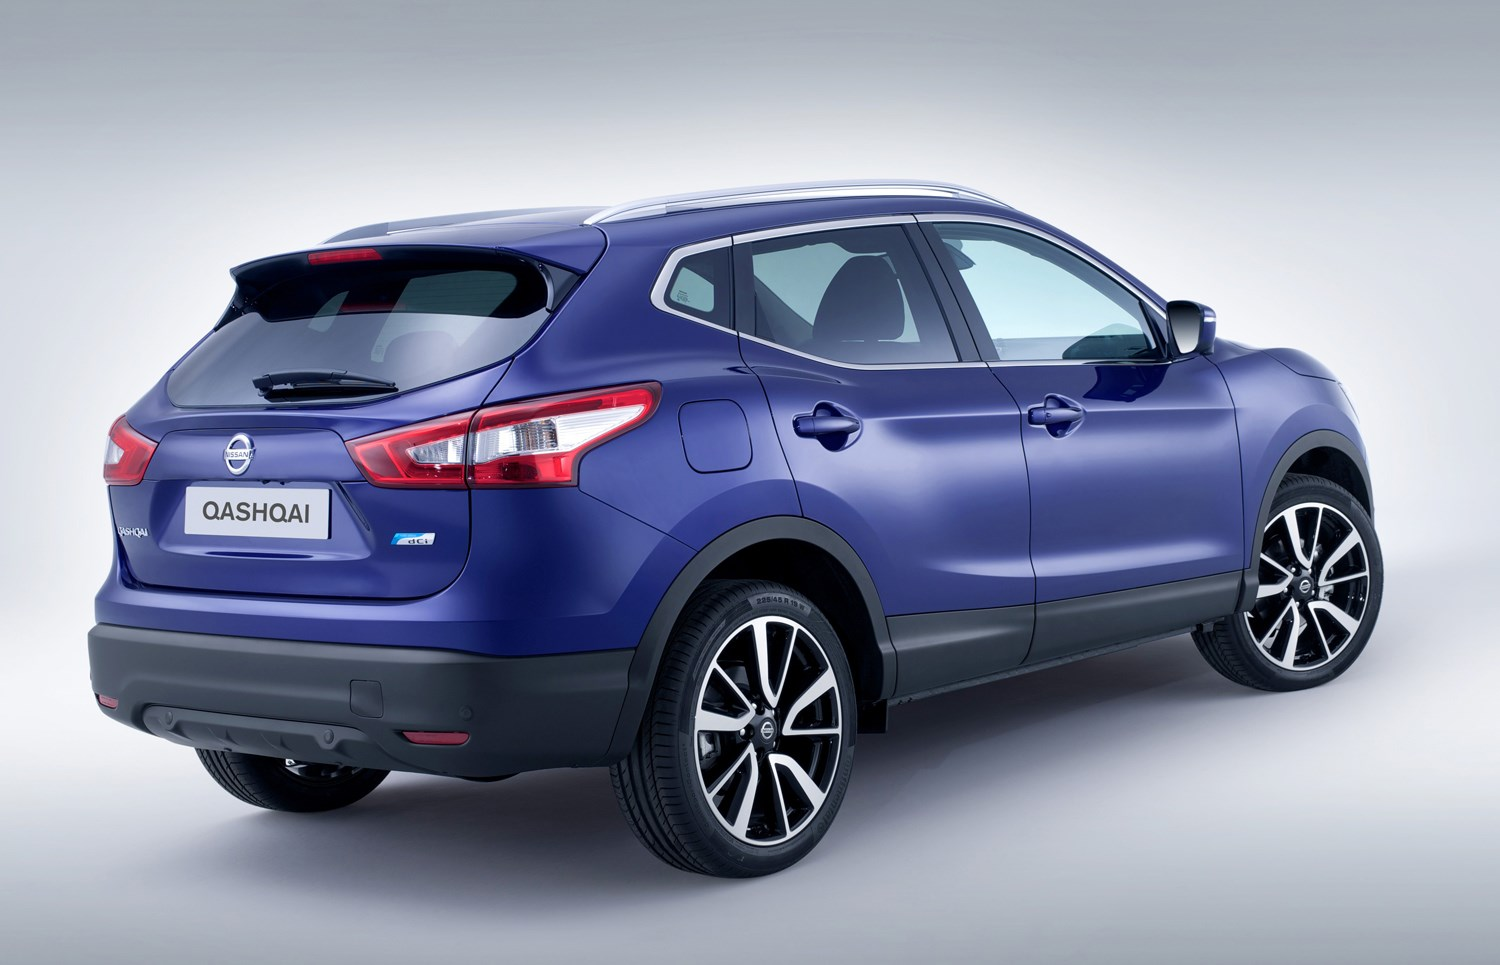 nissan qashqai suv review summary parkers. Black Bedroom Furniture Sets. Home Design Ideas